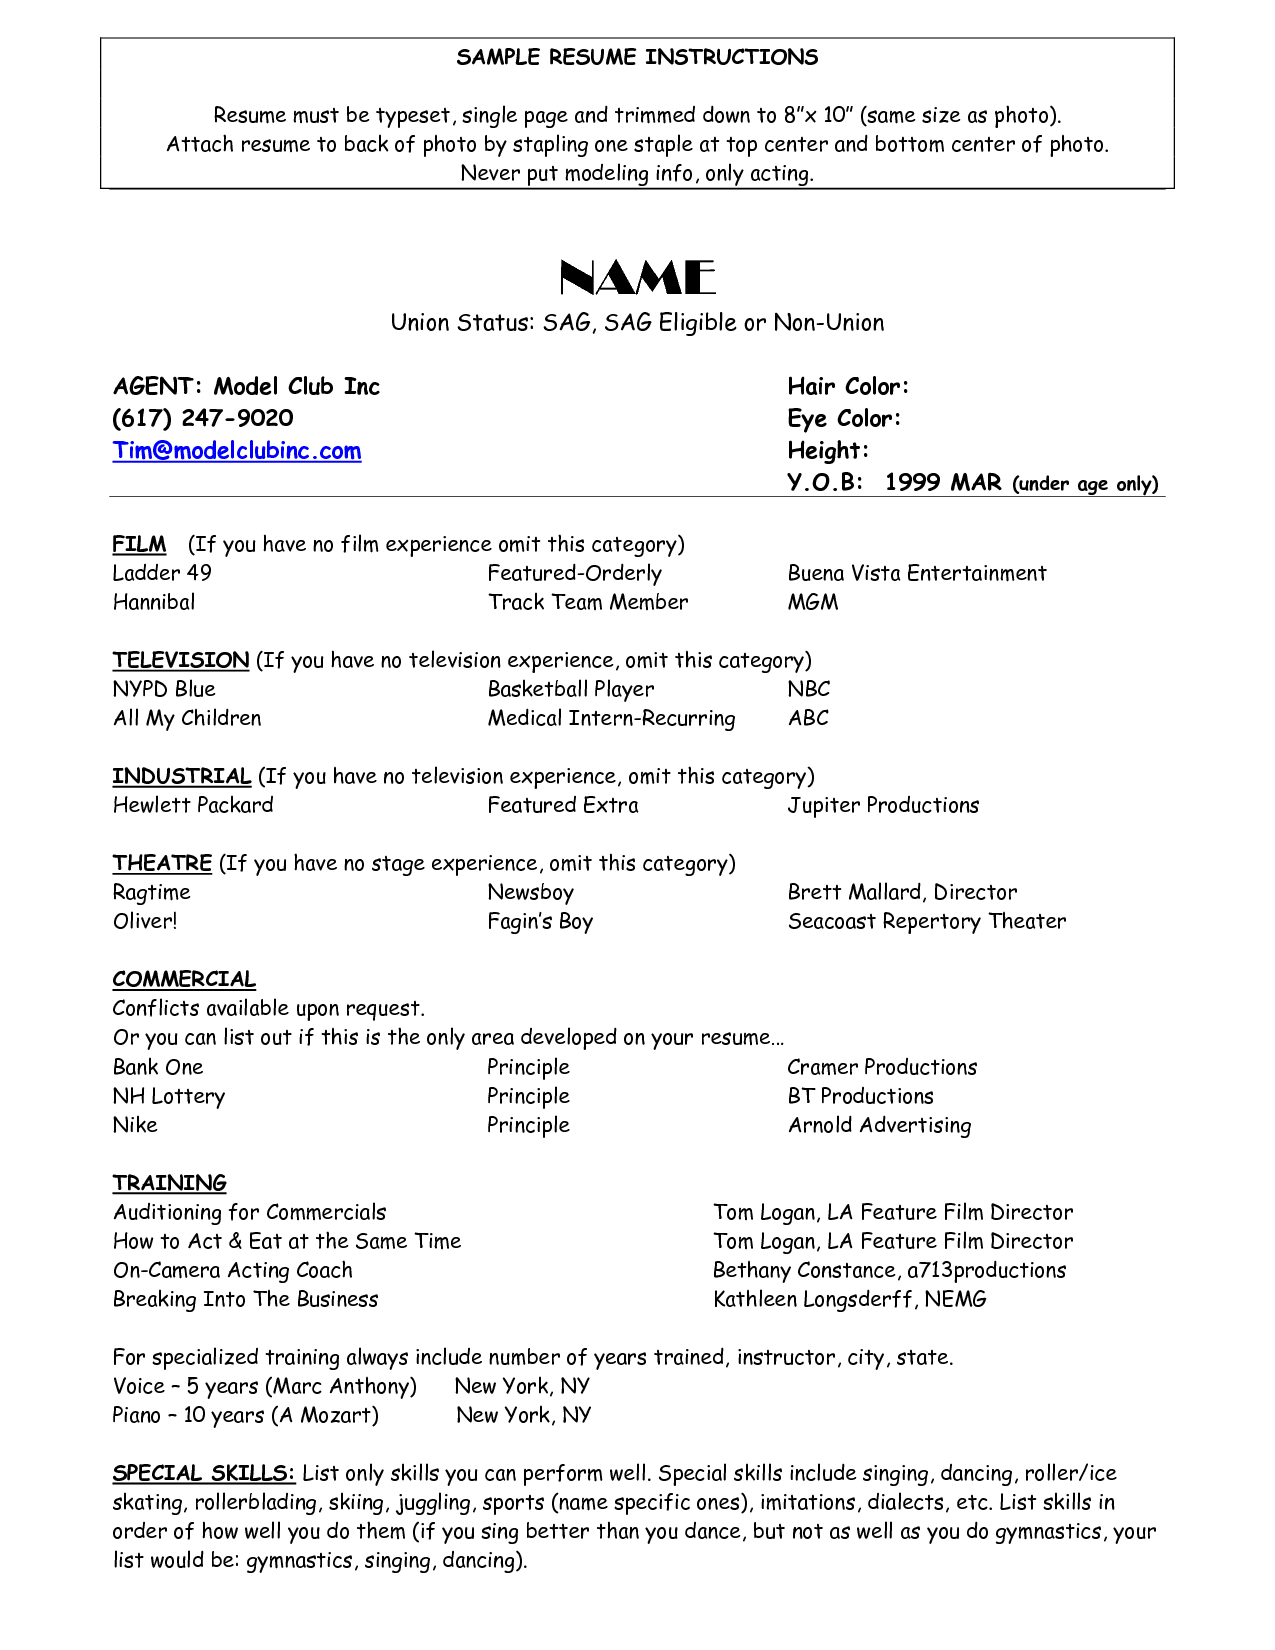 Acting Resume Beginner Best Resume For Child Actor  Scope Of Work Template  Acting Resumes .